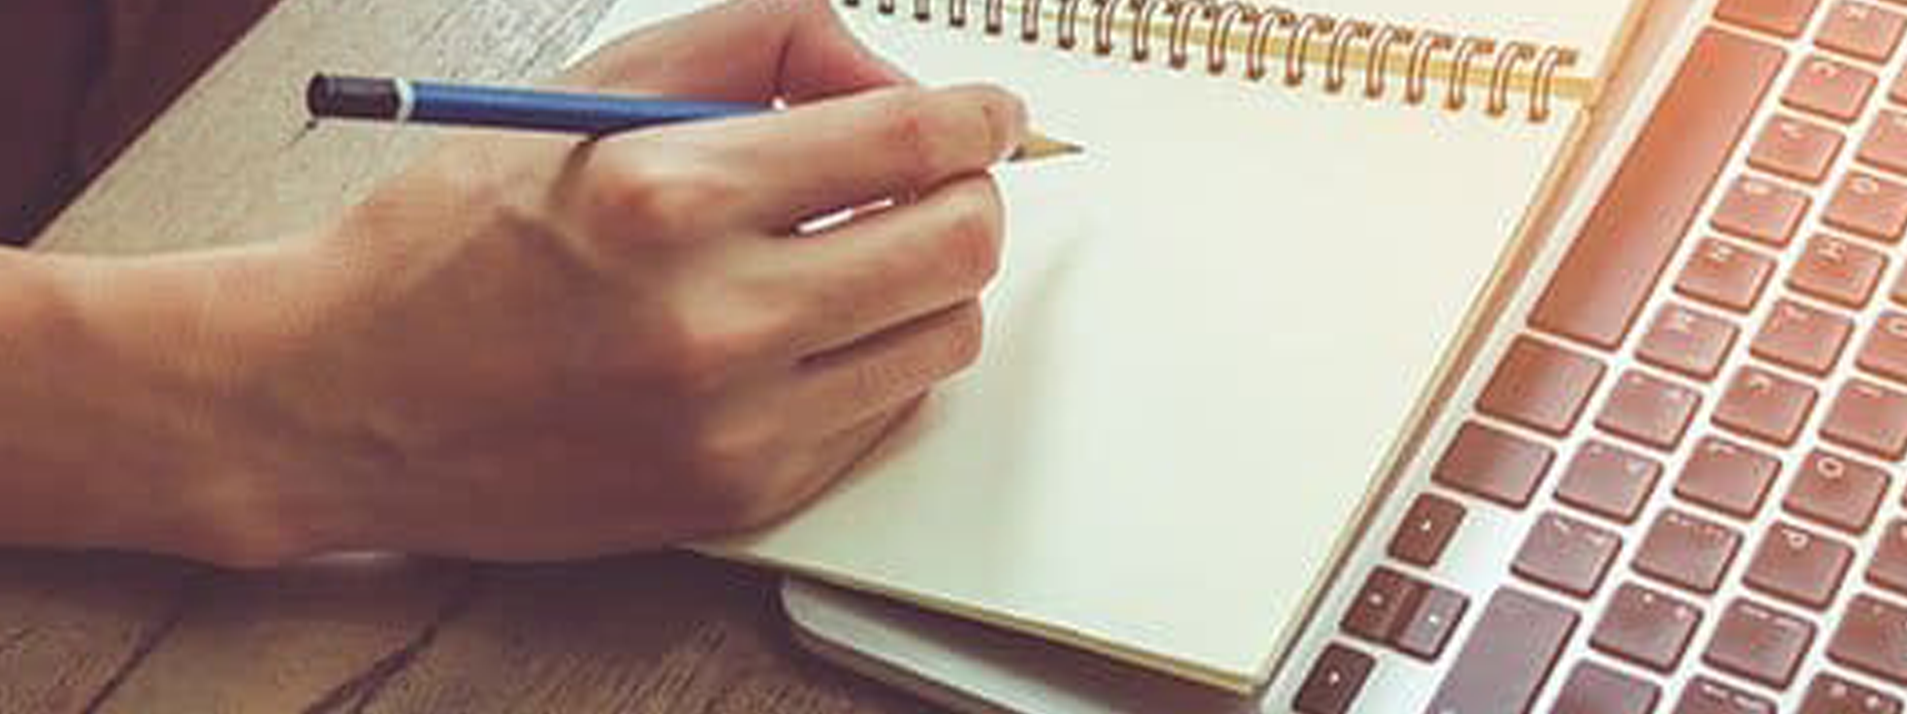 Get Unstuck & Learn To Write As a Joyful Practice With Nick Wolny